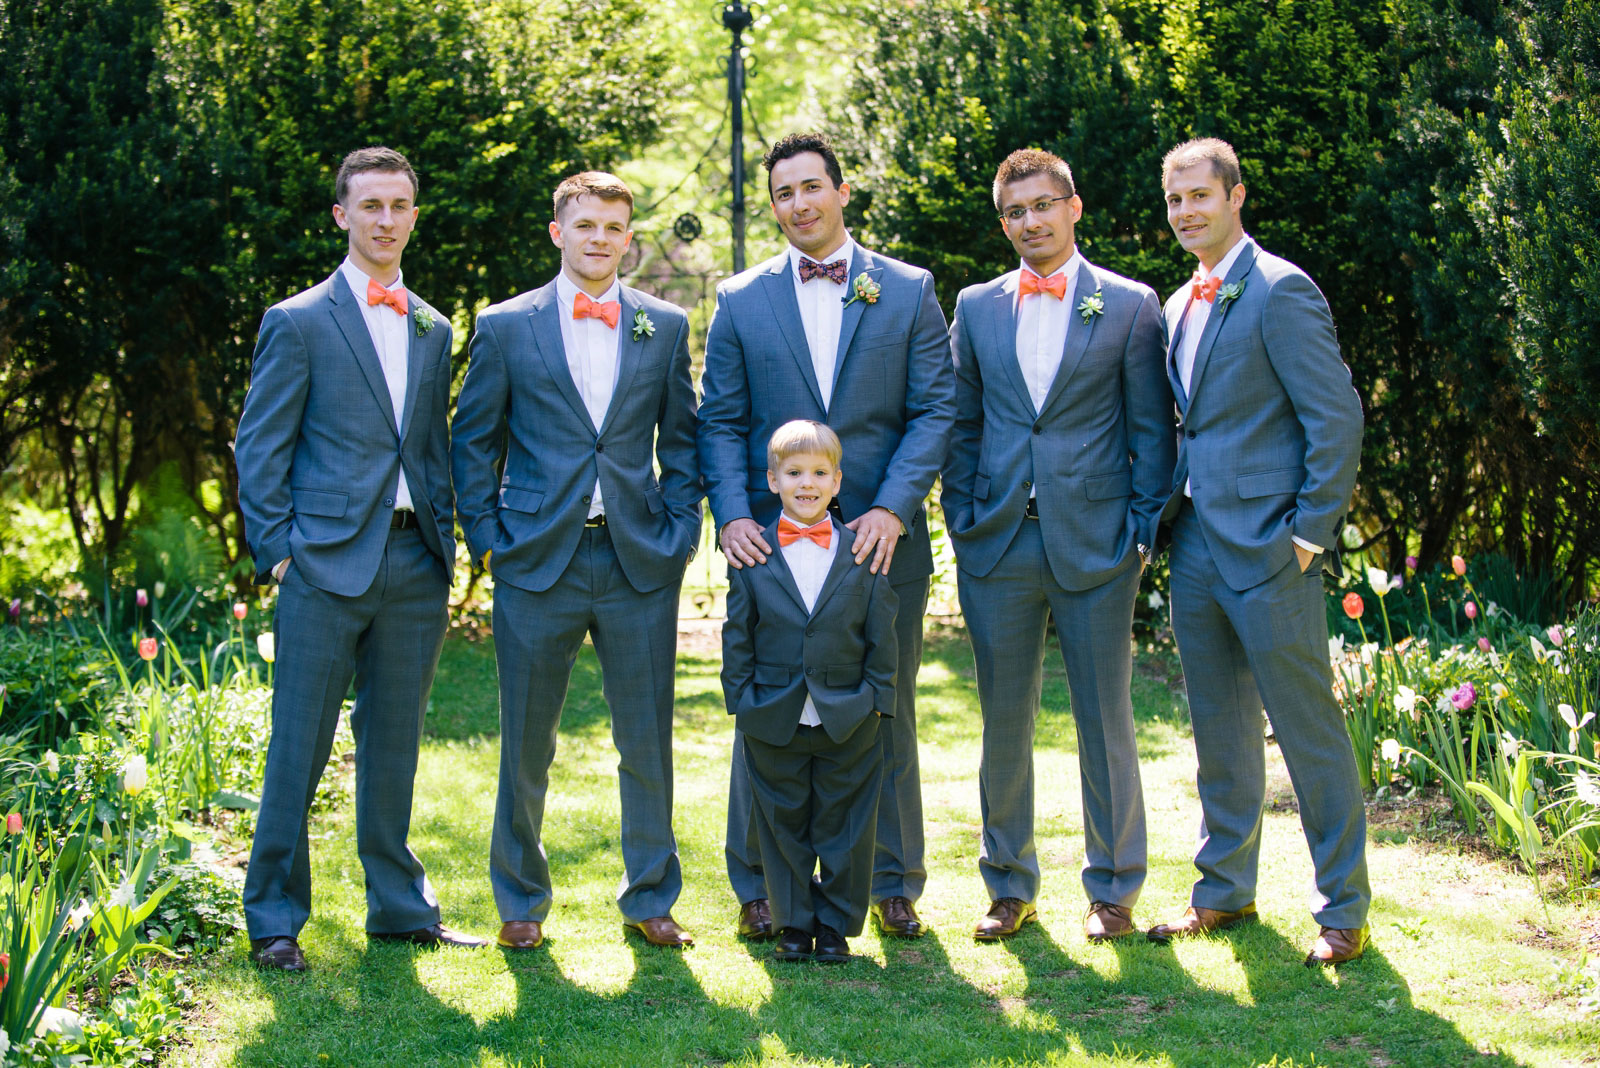 portrait of groomsmen with grey suits, salmon pink bowties, and succulent boutonnières